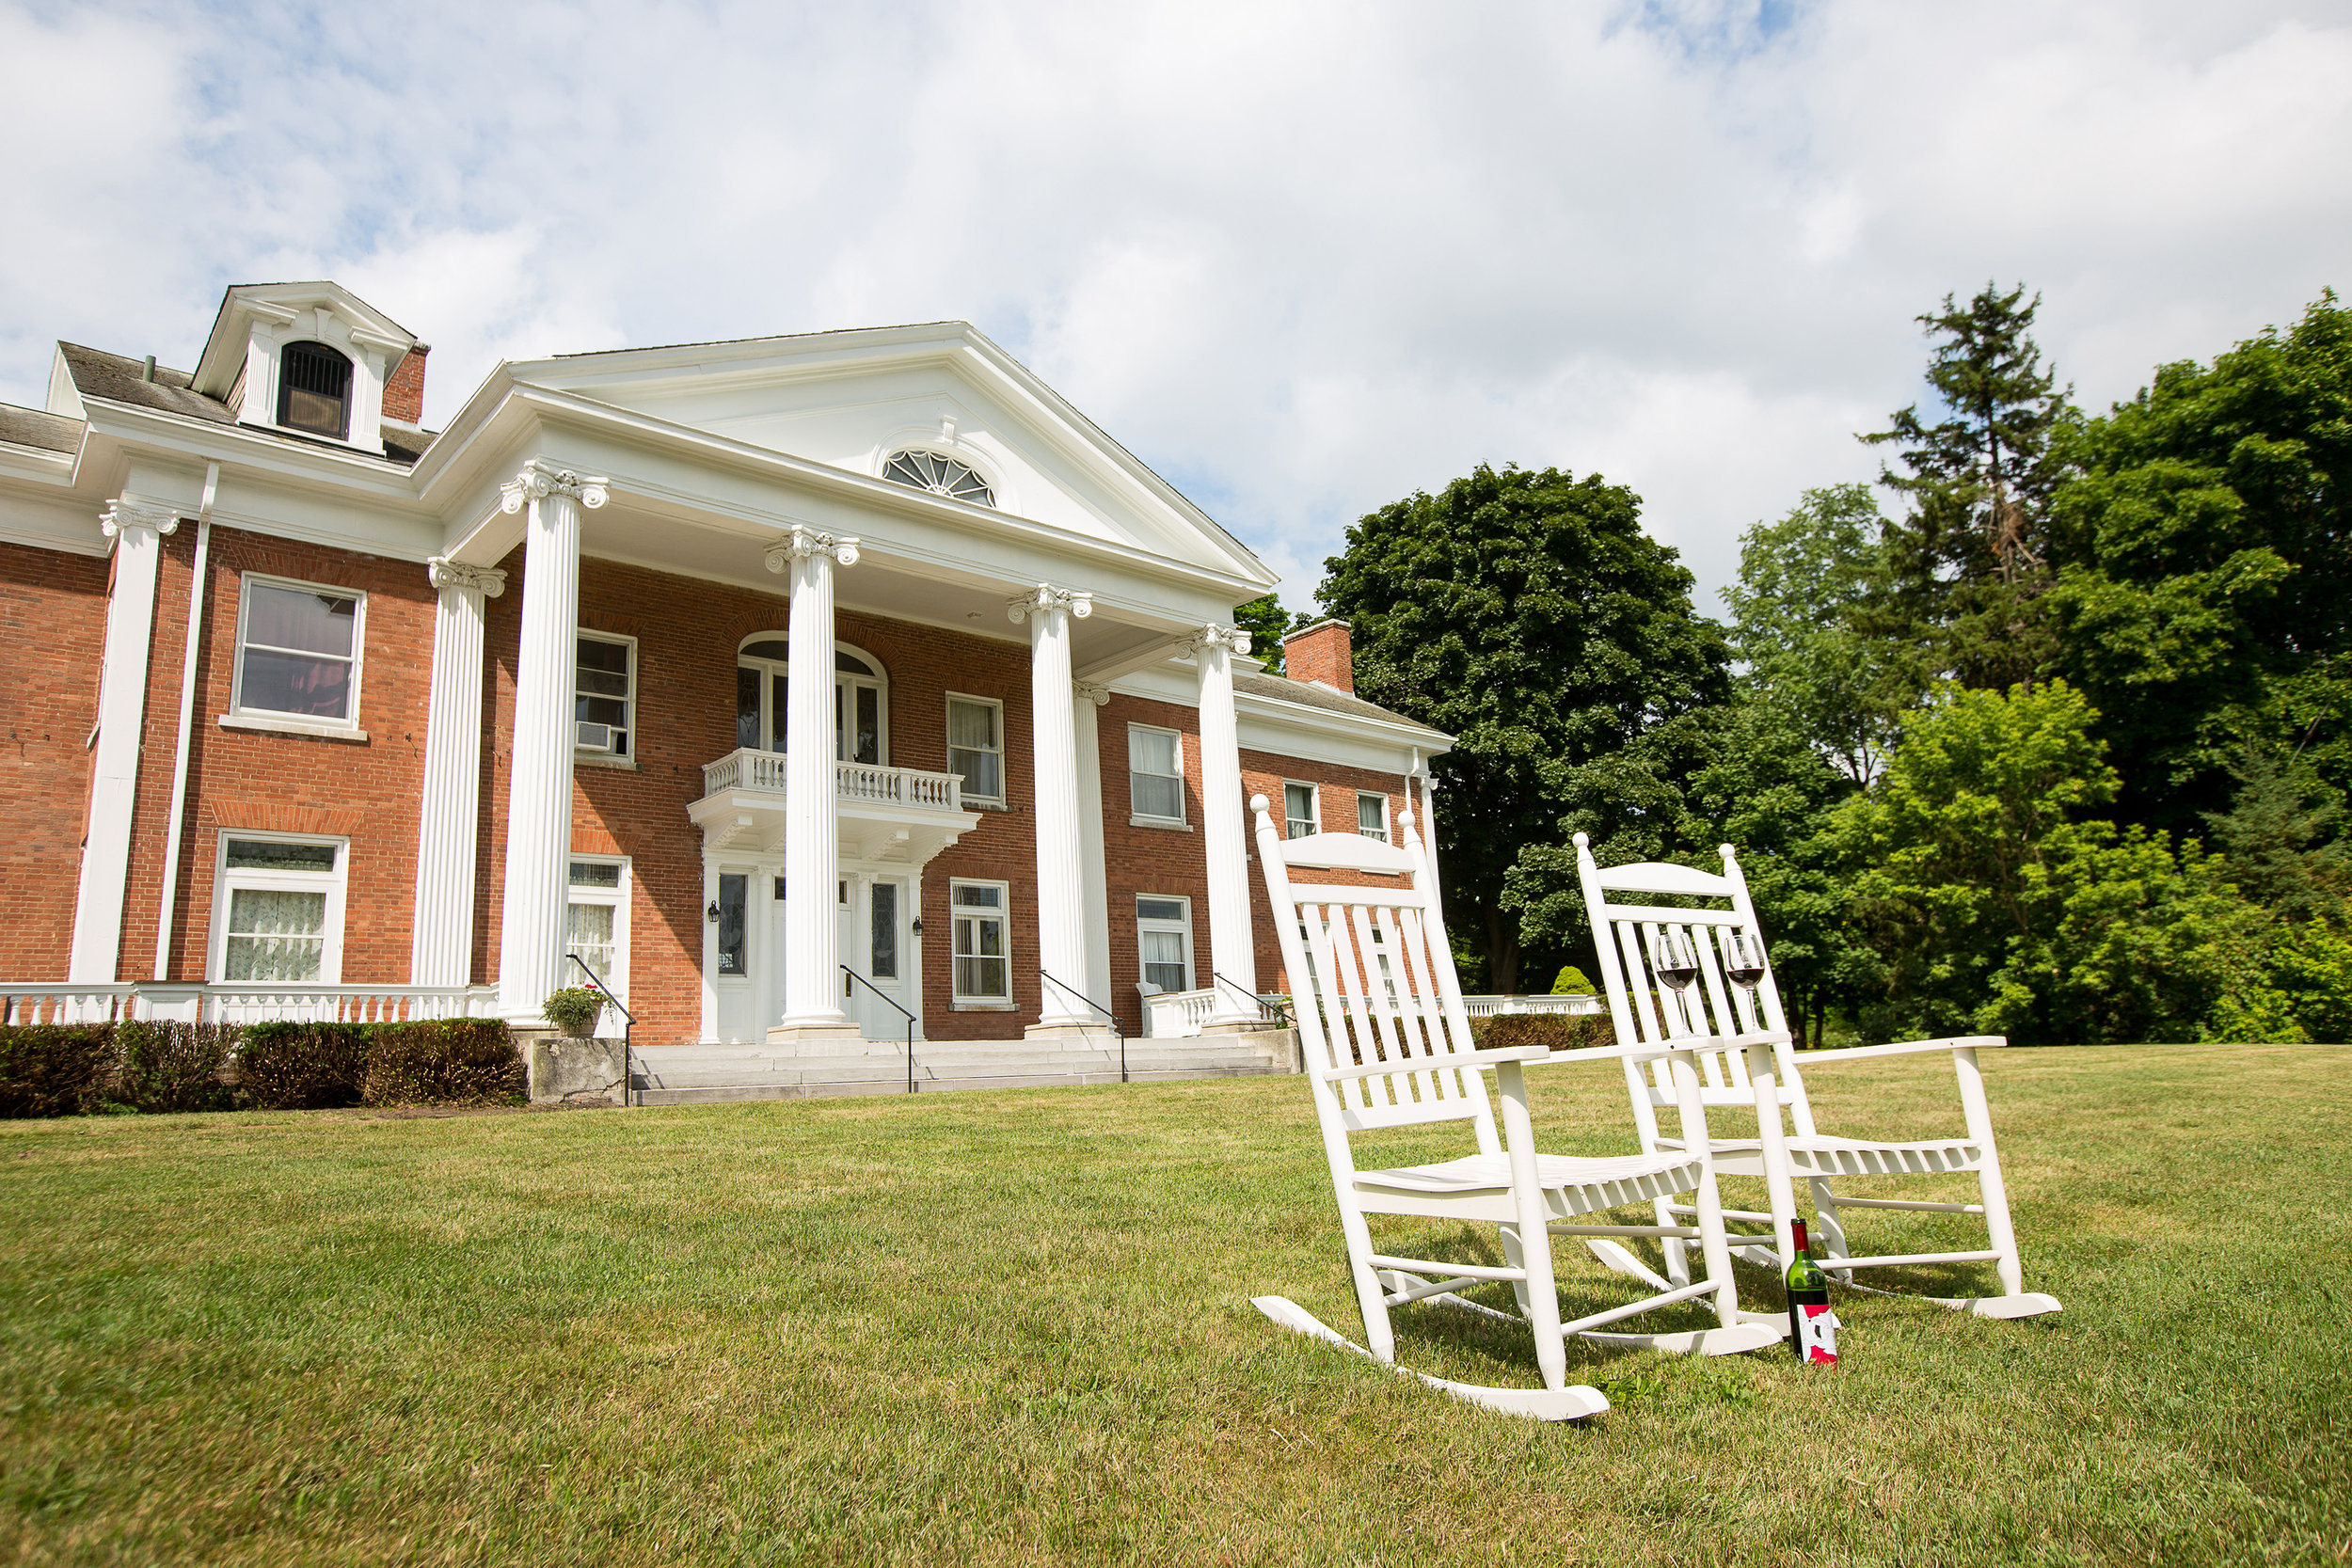 White Springs Manor - This hotel is perfect for guests interested in convenient seclusion in the heart of the Finger Lakes. The White Springs Manor Guesthouse is a Georgian Revival Mansion with period guest rooms that provide guests relaxation, peace and quiet. The quiet back patio overlooks vineyards and a beautifully serene spring fed pond with a view of Seneca Lake in the distance. This hotel is located 2 miles West of the Belhurst Castle resort.View our Rooms at White Springs Manor